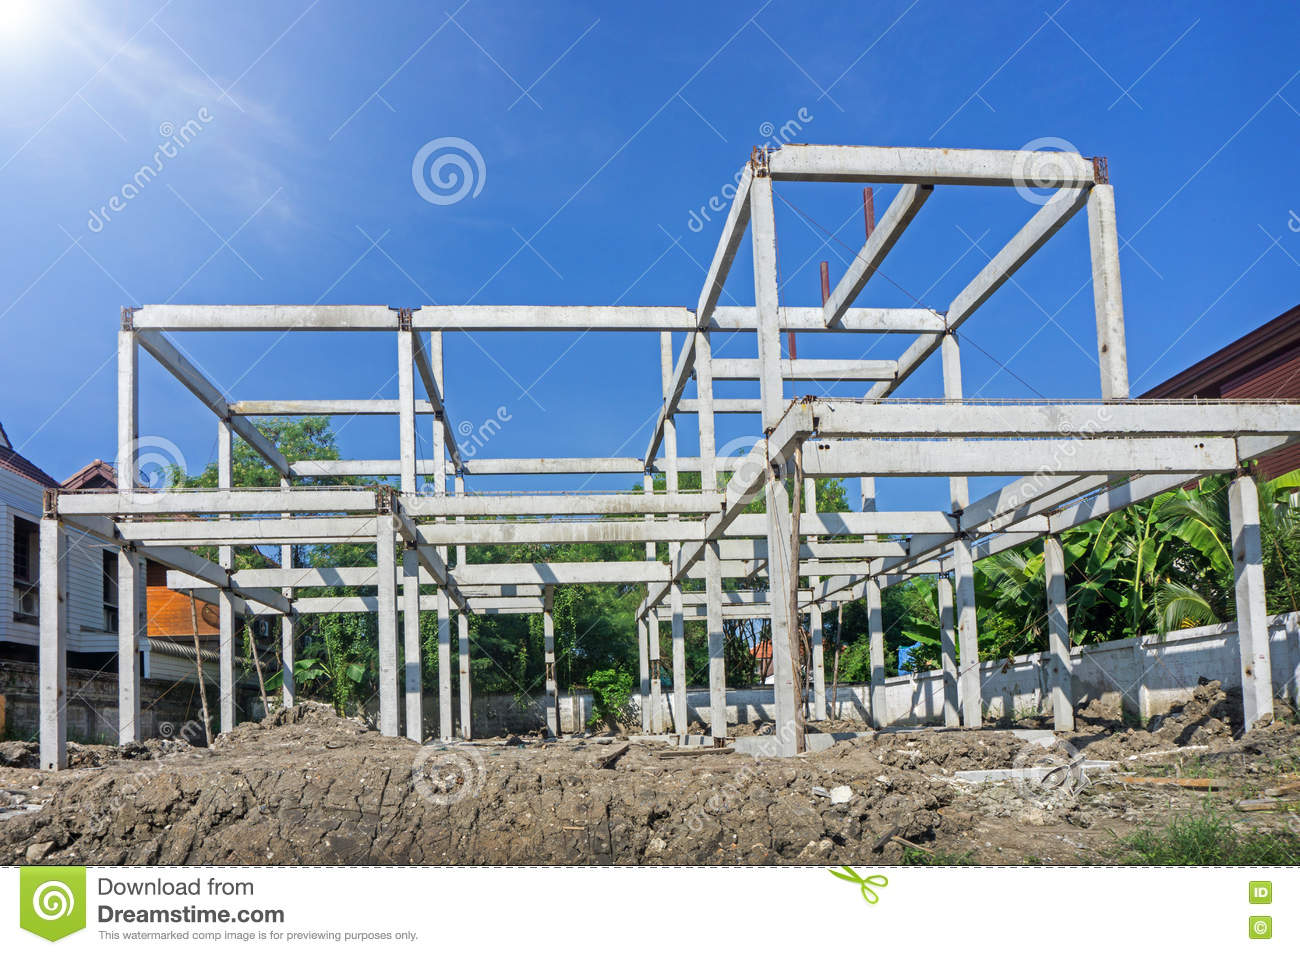 New Residential Construction Home Concrete Framing Stock Image ...